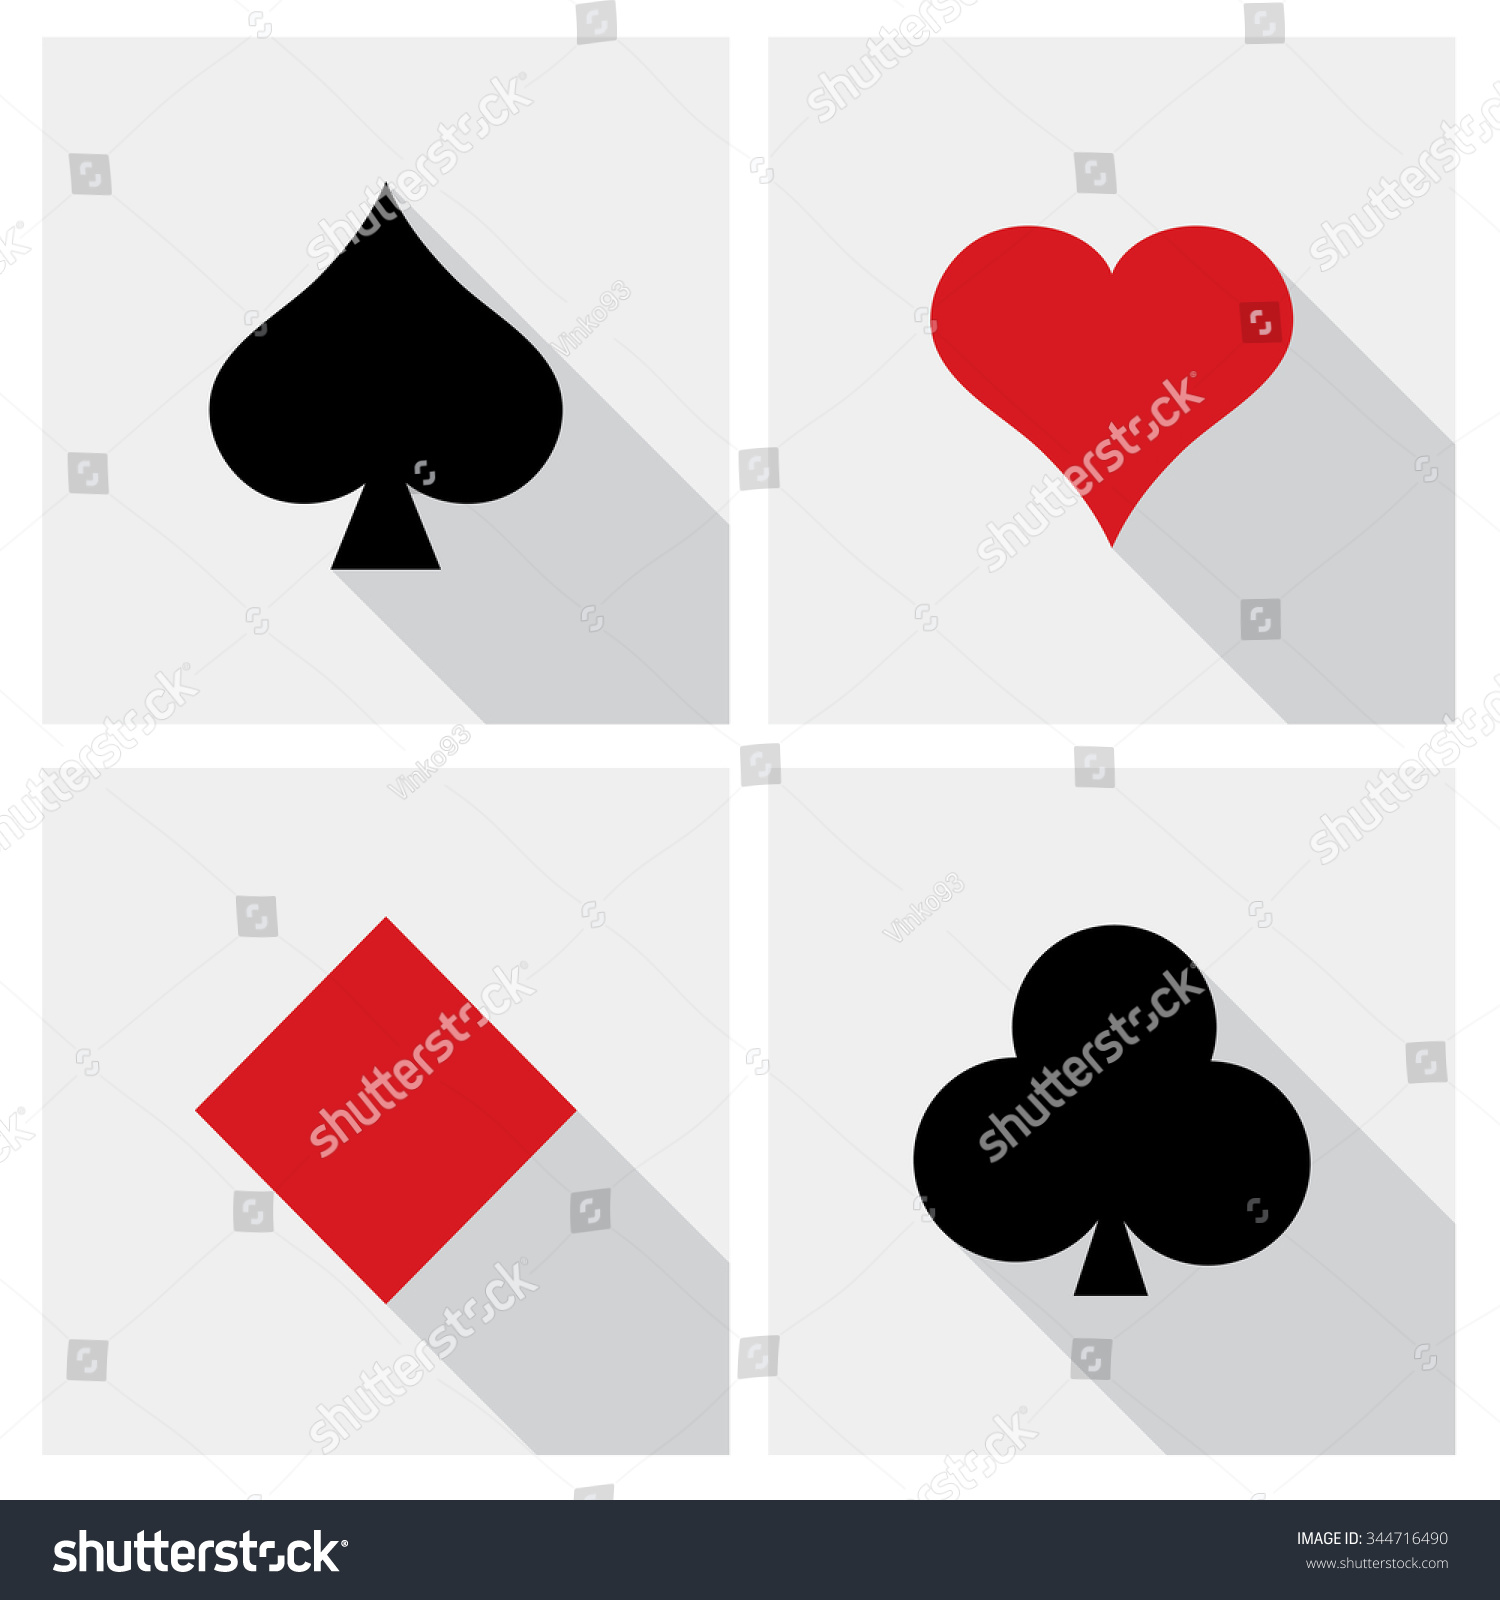 Vector playing cards symbols stock vector 344716490 shutterstock vector playing cards symbols biocorpaavc